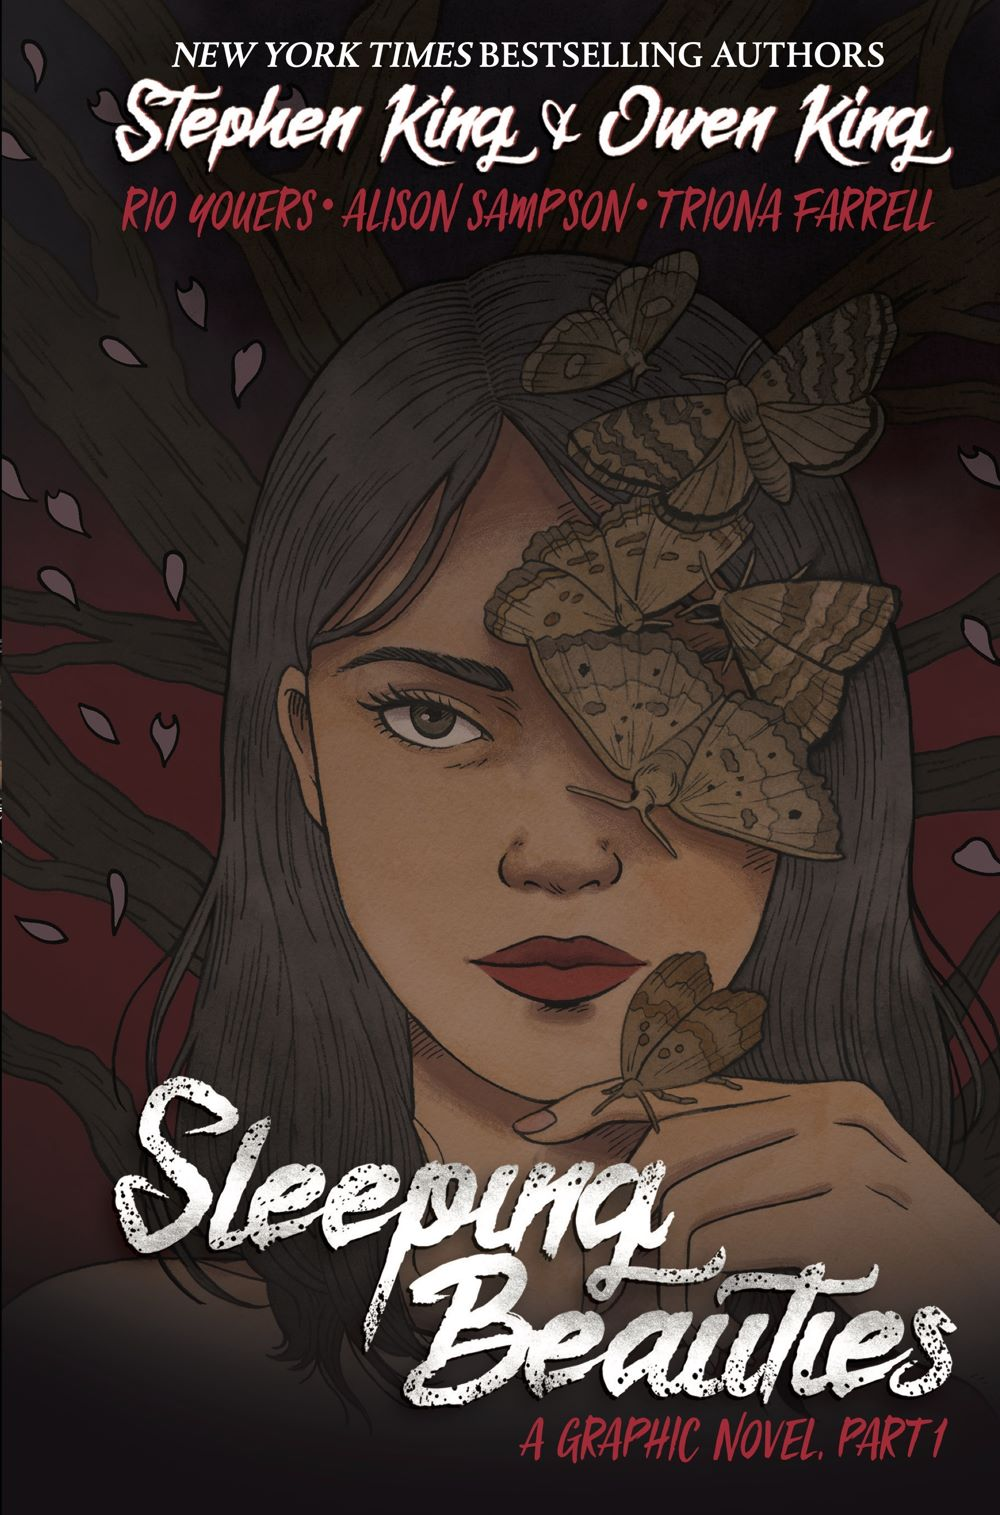 4f968bce-bdea-427a-98e5-3e758e30ede4 Stephen King and Owen King's SLEEPING BEAUTIES to be adapted by IDW